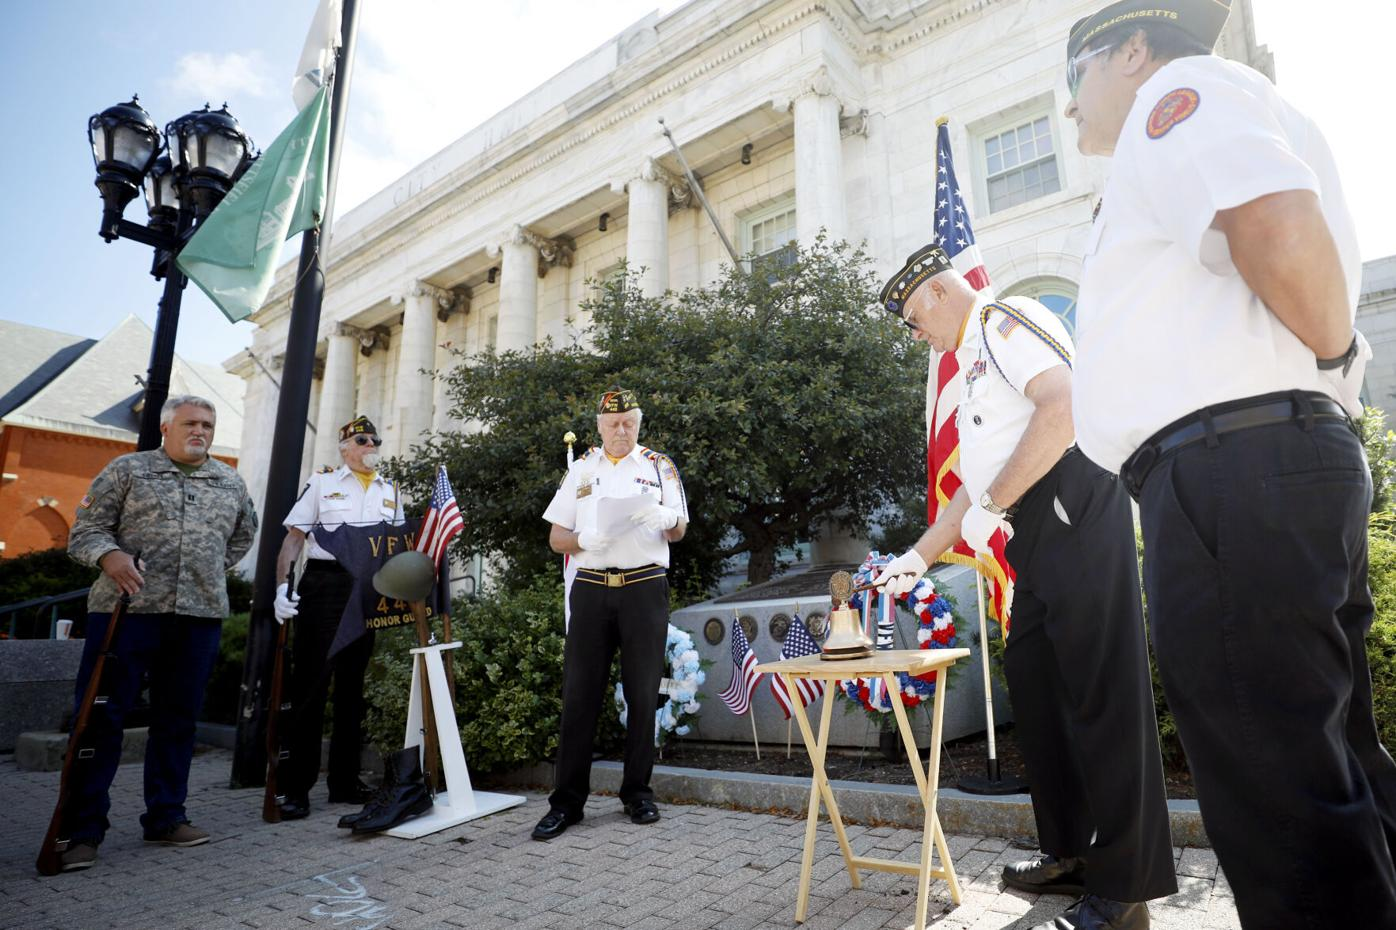 veterans stand together and ring small bell